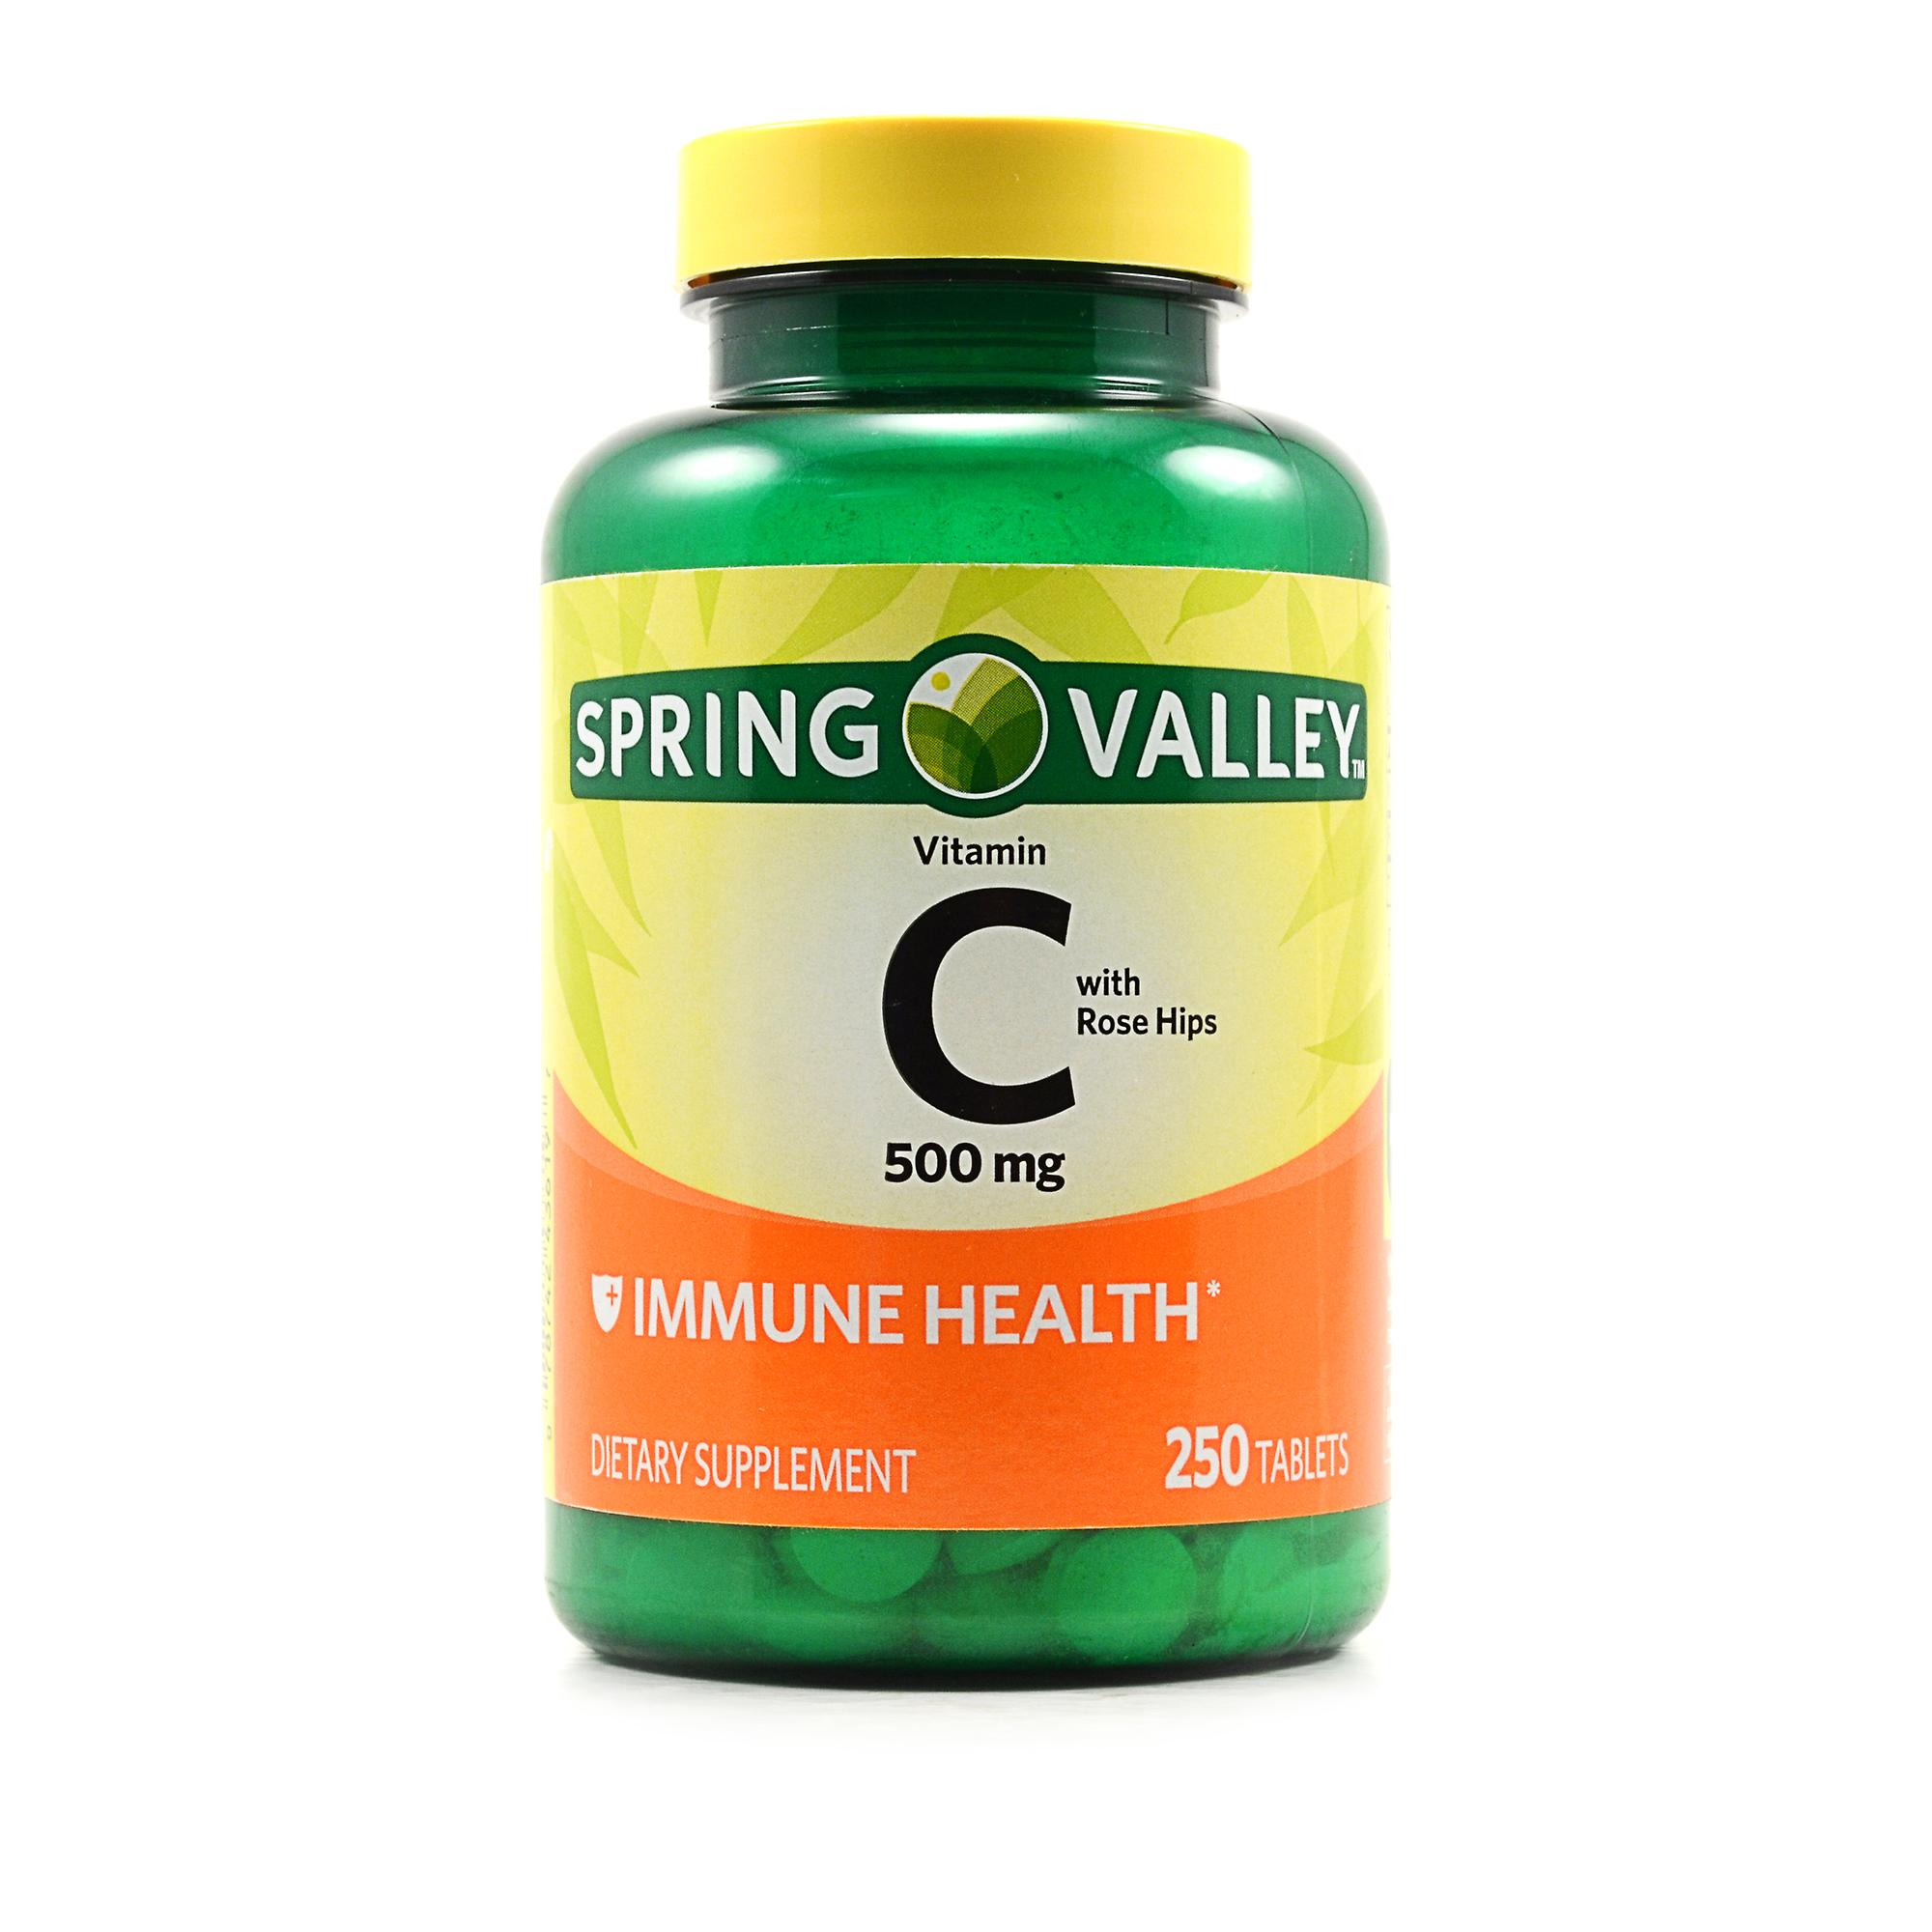 Spring valley vitamin c review labdoor for Spring valley fish oil review